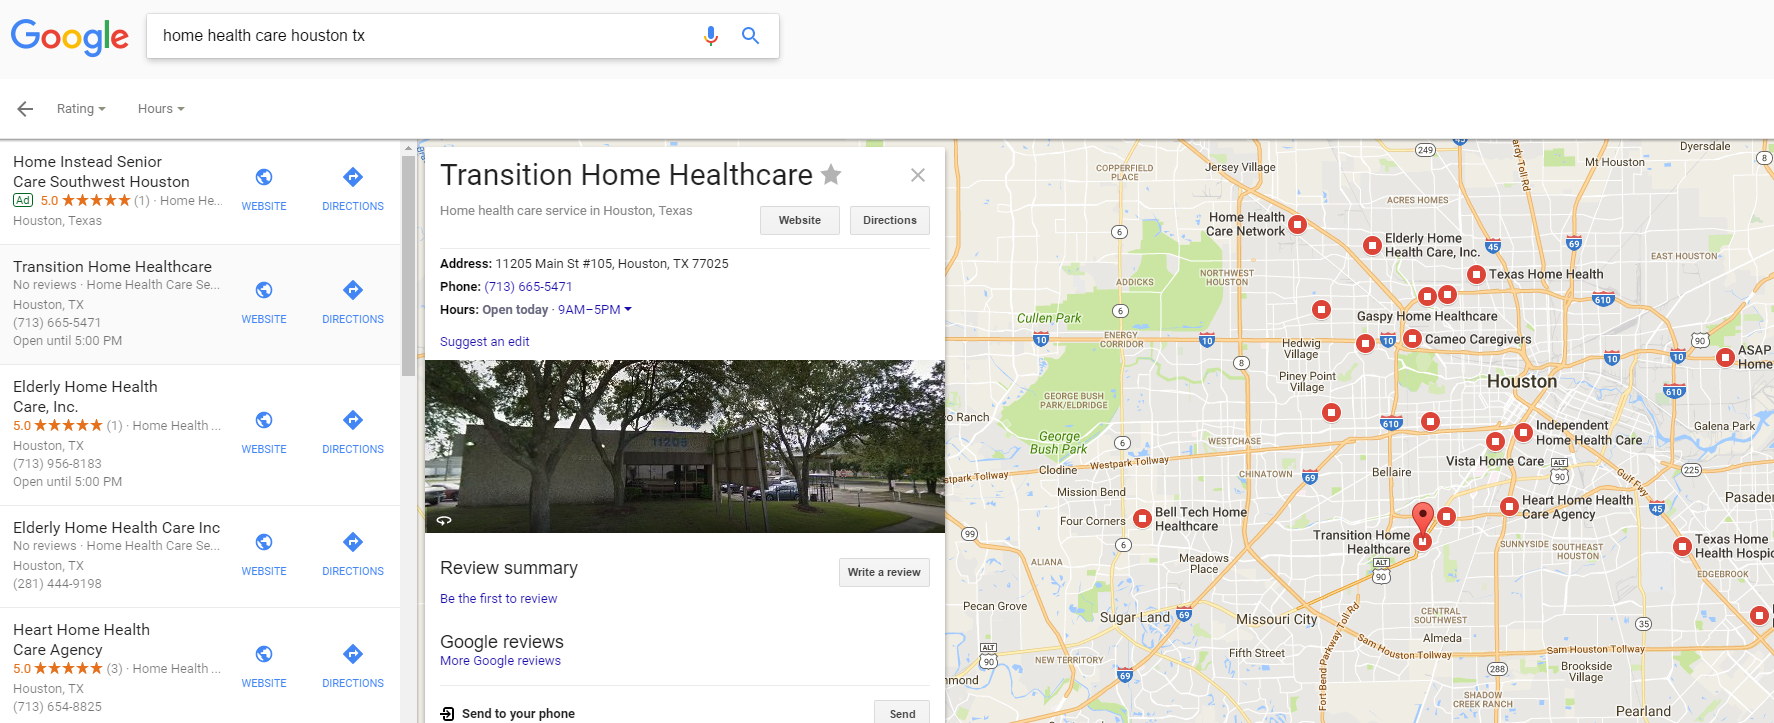 Texas Google Maps And Travel Information | Download Free Texas - Houston Texas Google Maps